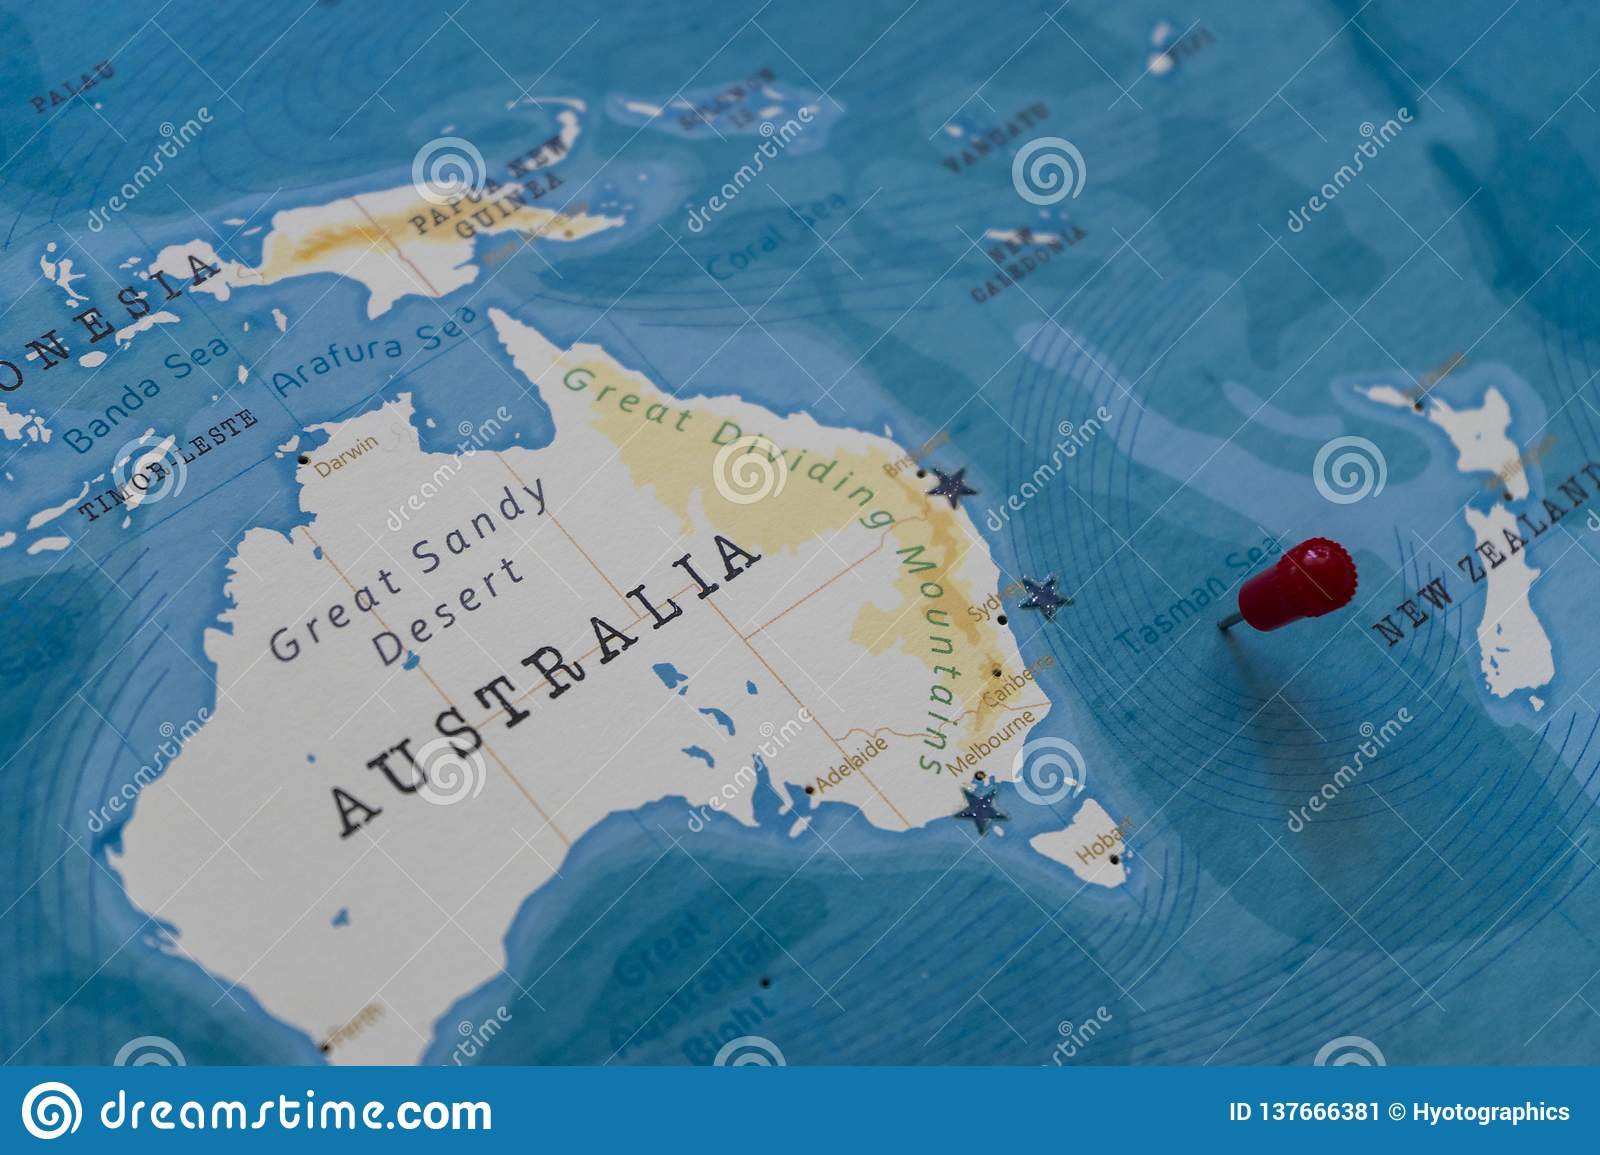 Image of: A Pin On Tasman Sea In The World Map Stock Image Image Of Geography World 137666381